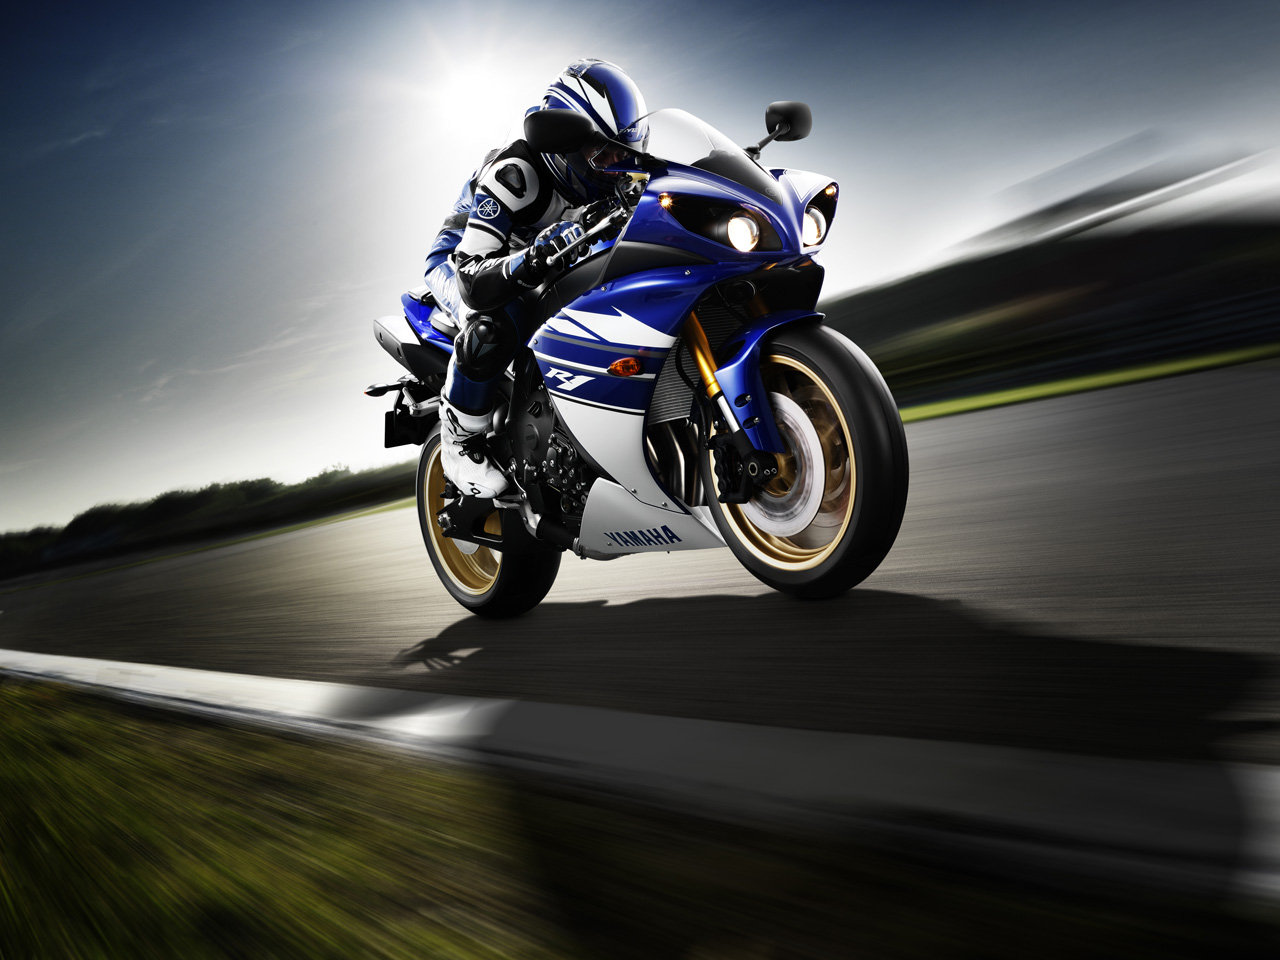 Yamaha Motorcycles For Sale - Motorcycles Exporter